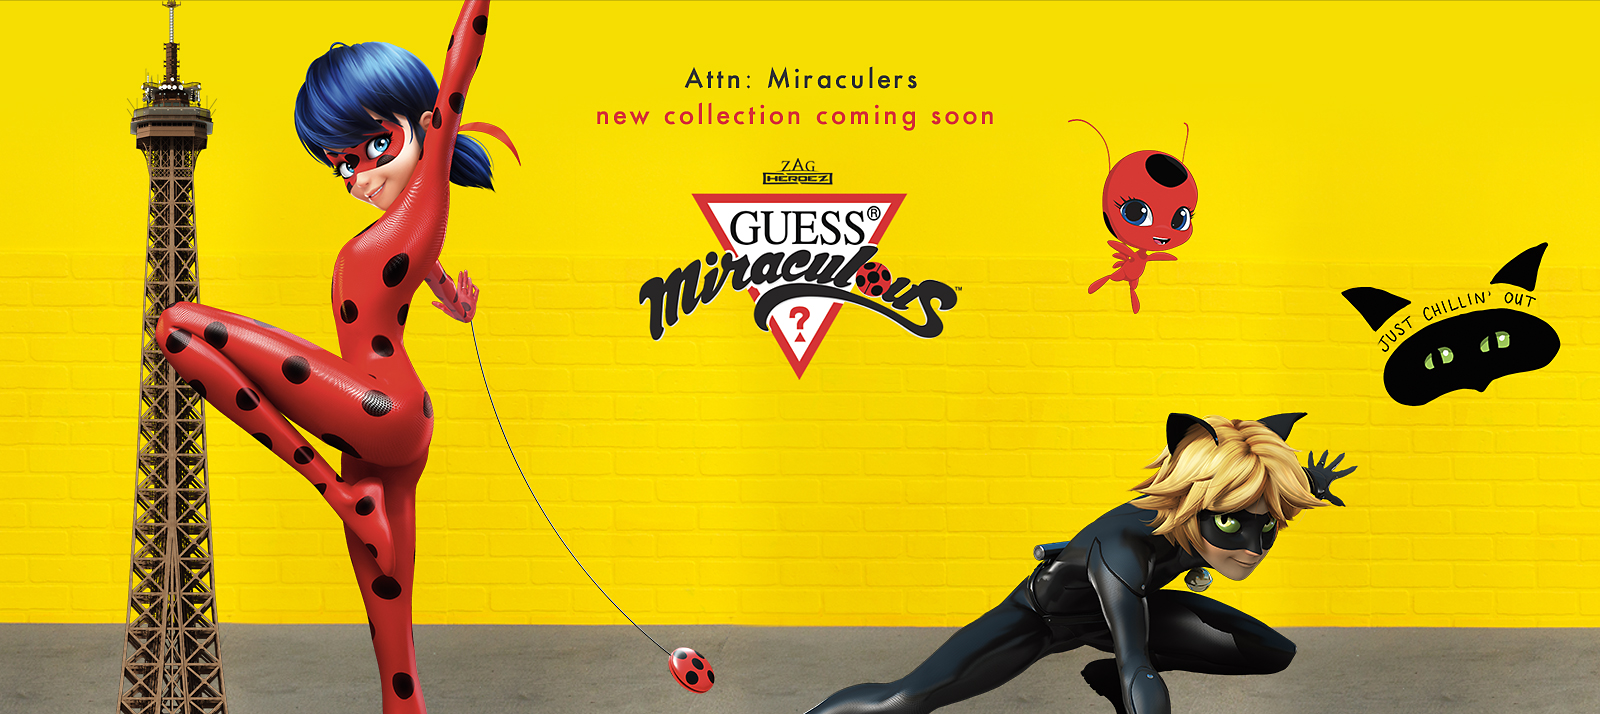 New GUESS x Miraculous collection coming soon